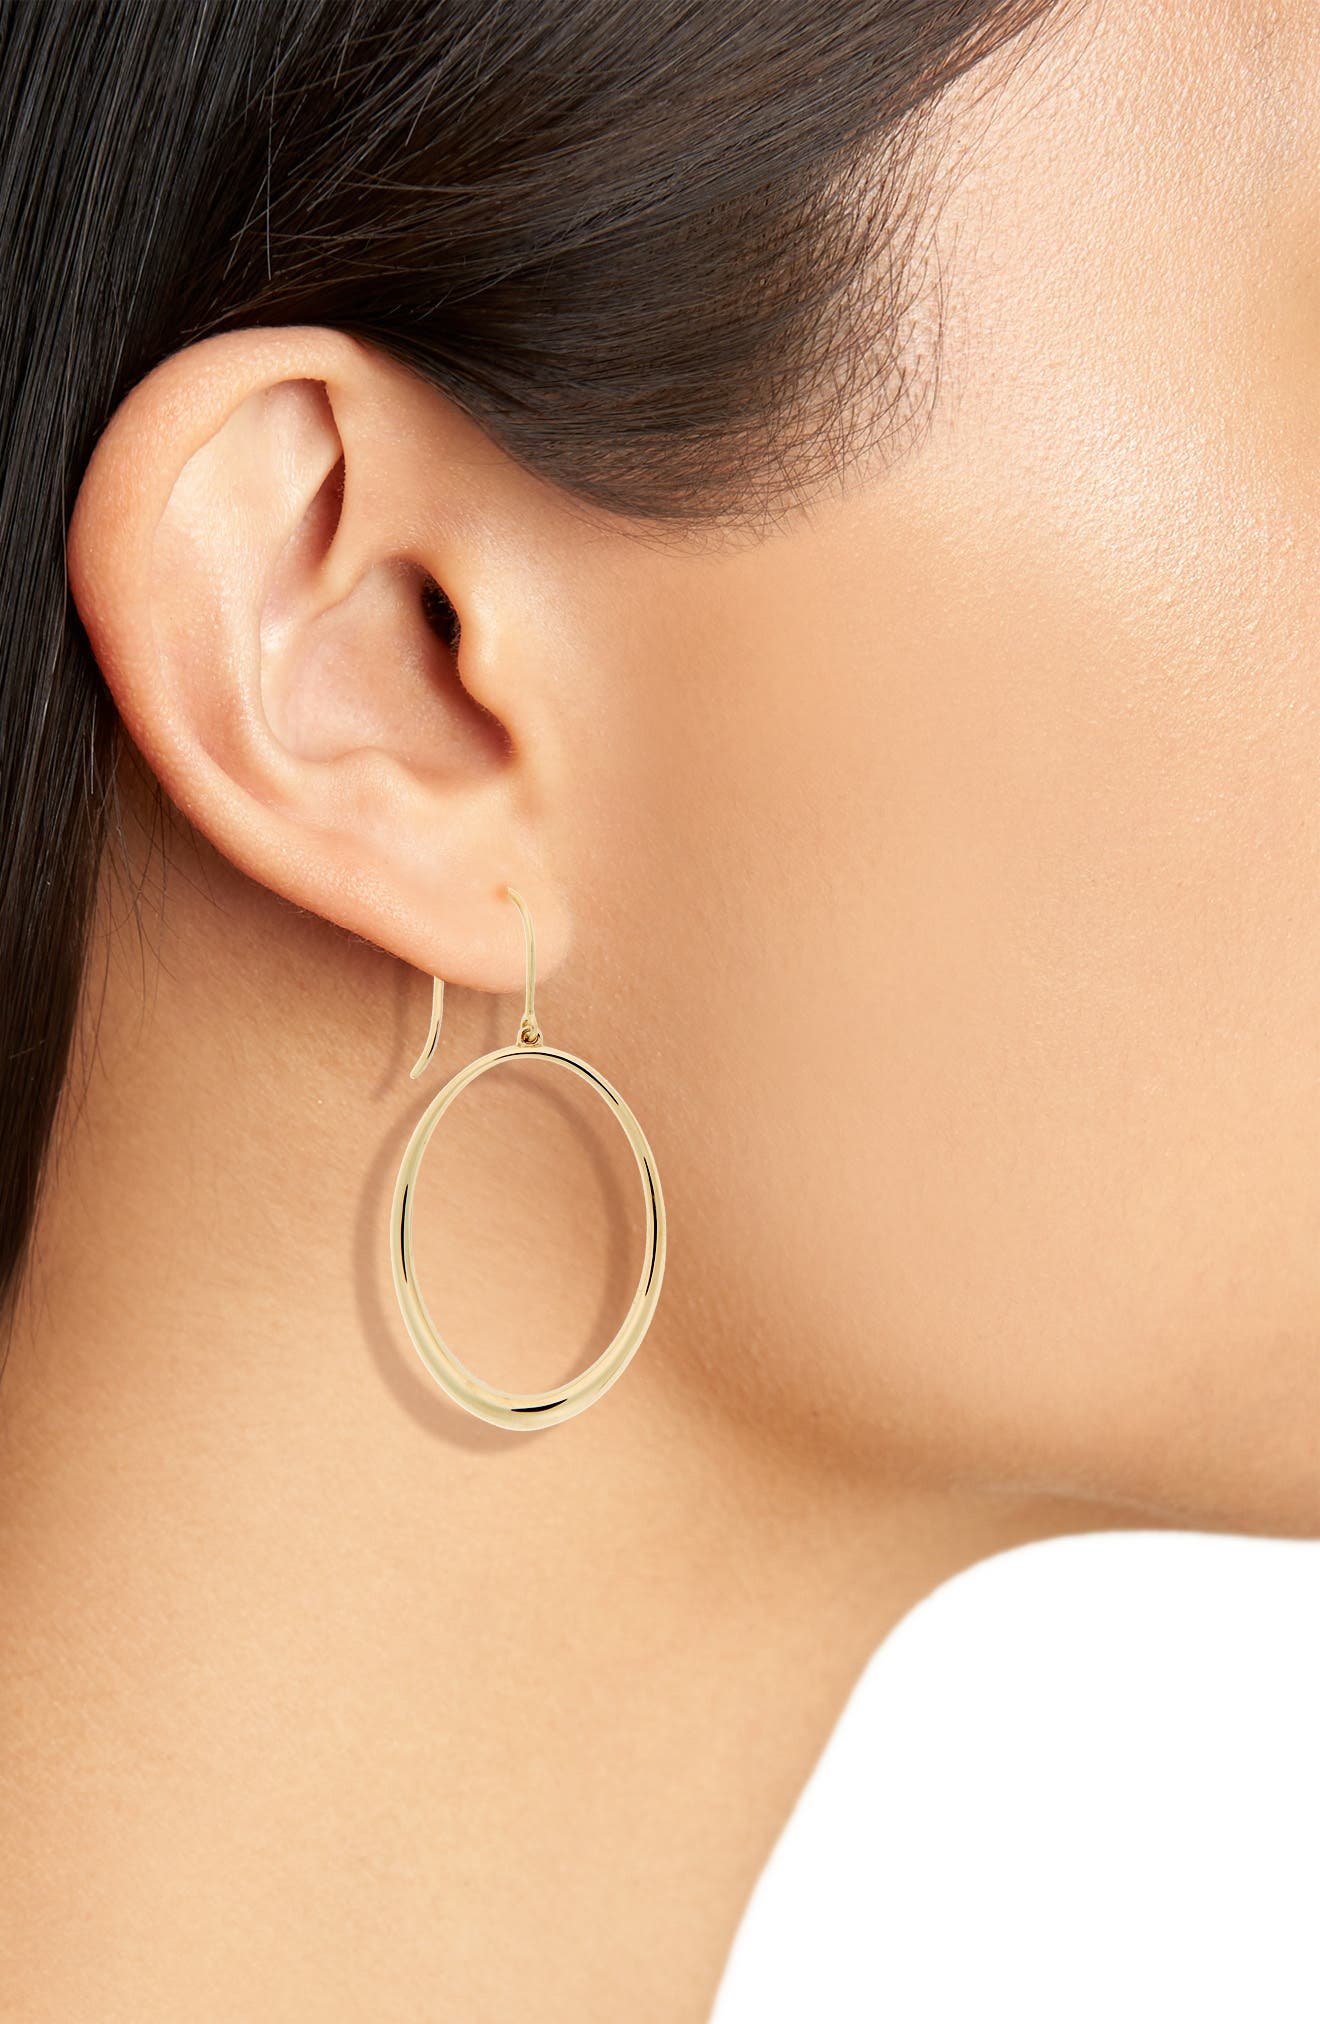 Oval Hoop Earrings,                             Alternate thumbnail 2, color,                             Yellow Gold